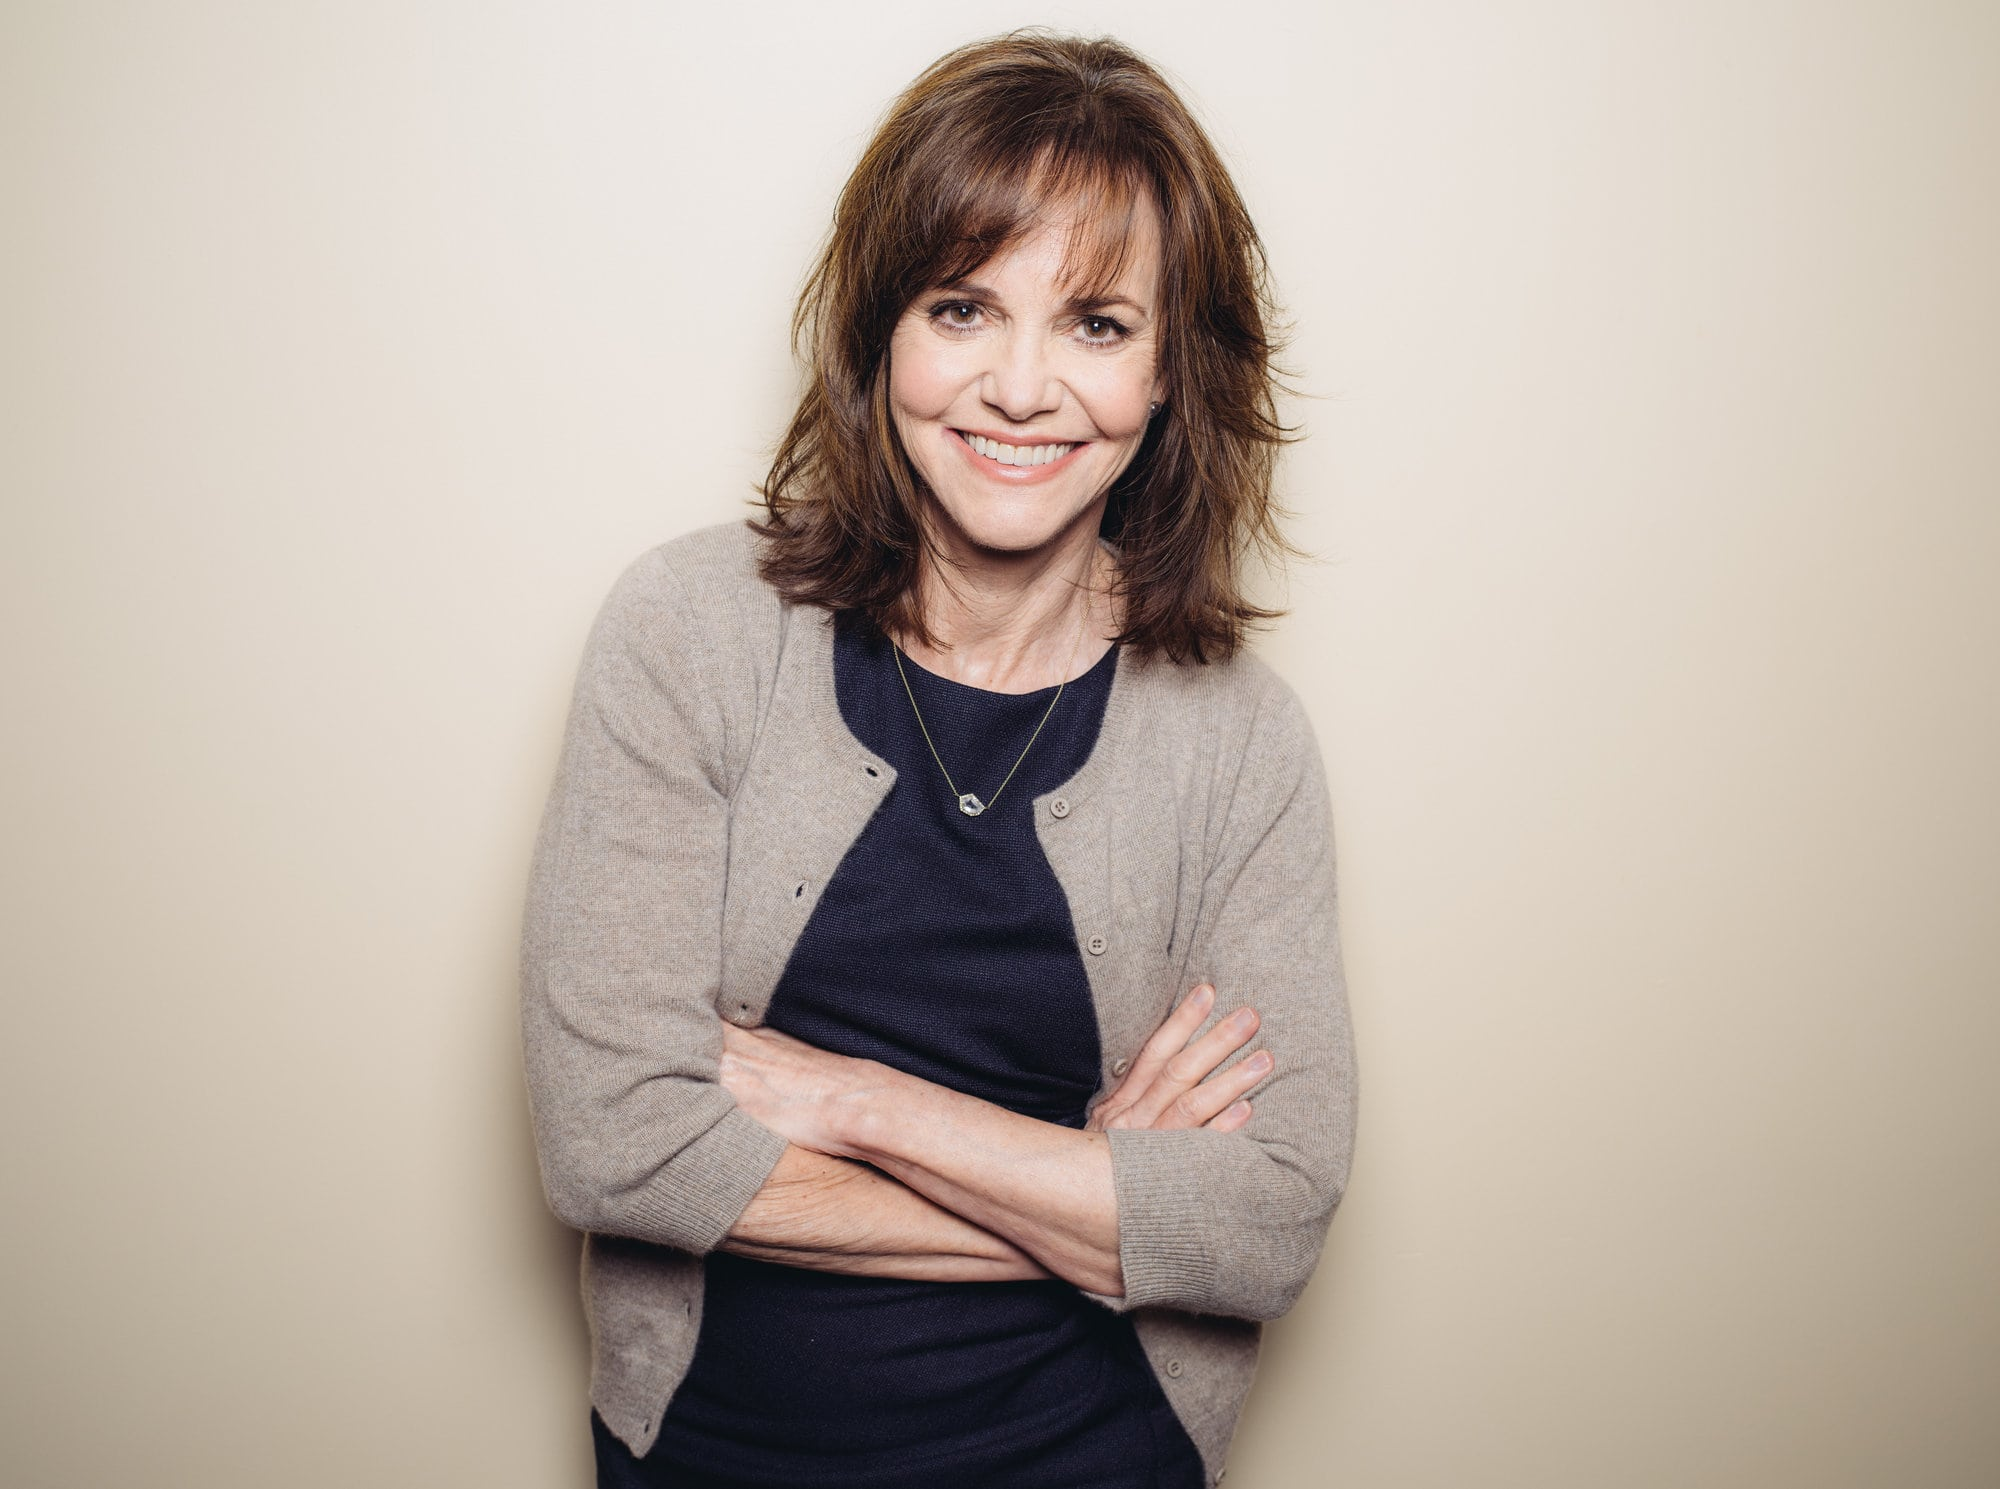 Sally Field Widescreen for desktop